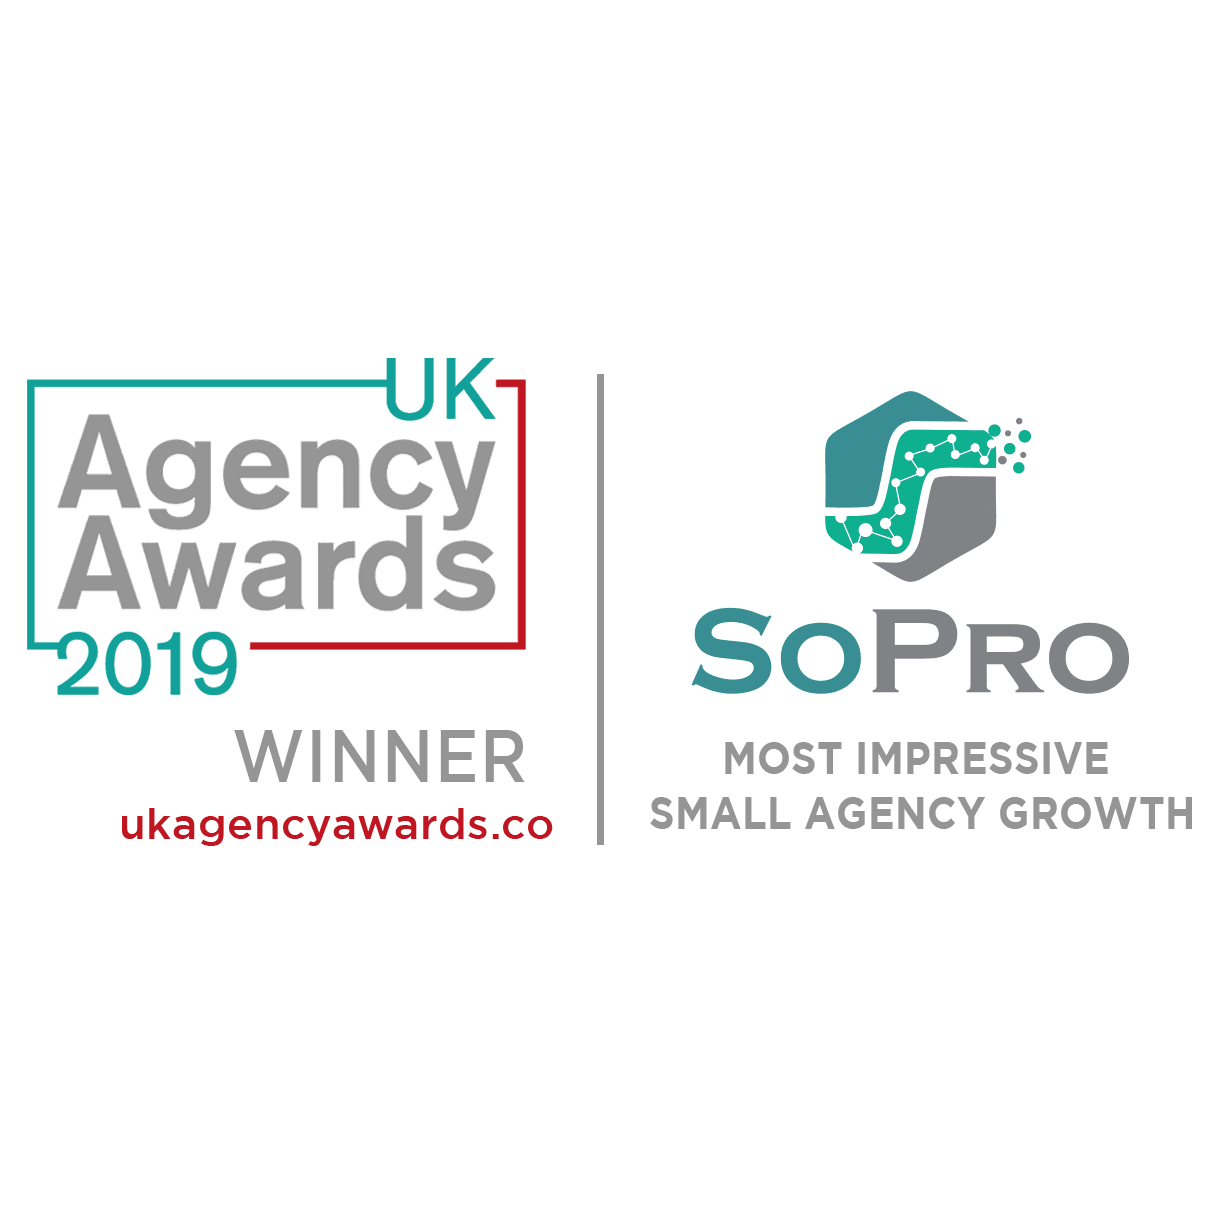 uk_agency-awards